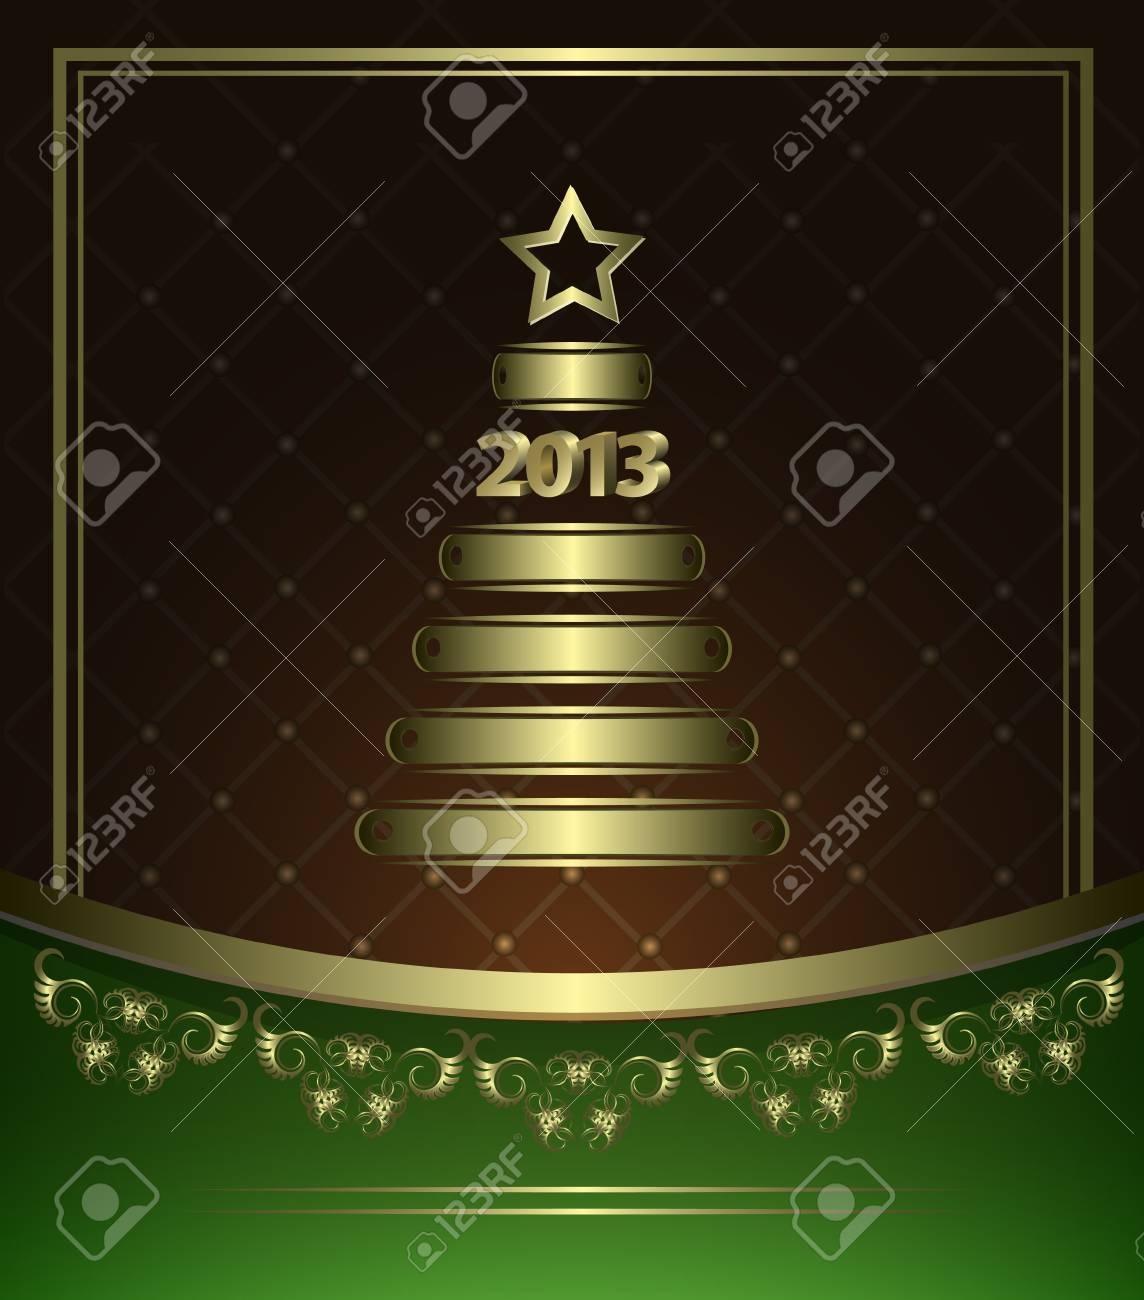 New Year Card with golden elements in abstract style Stock Vector - 14620452